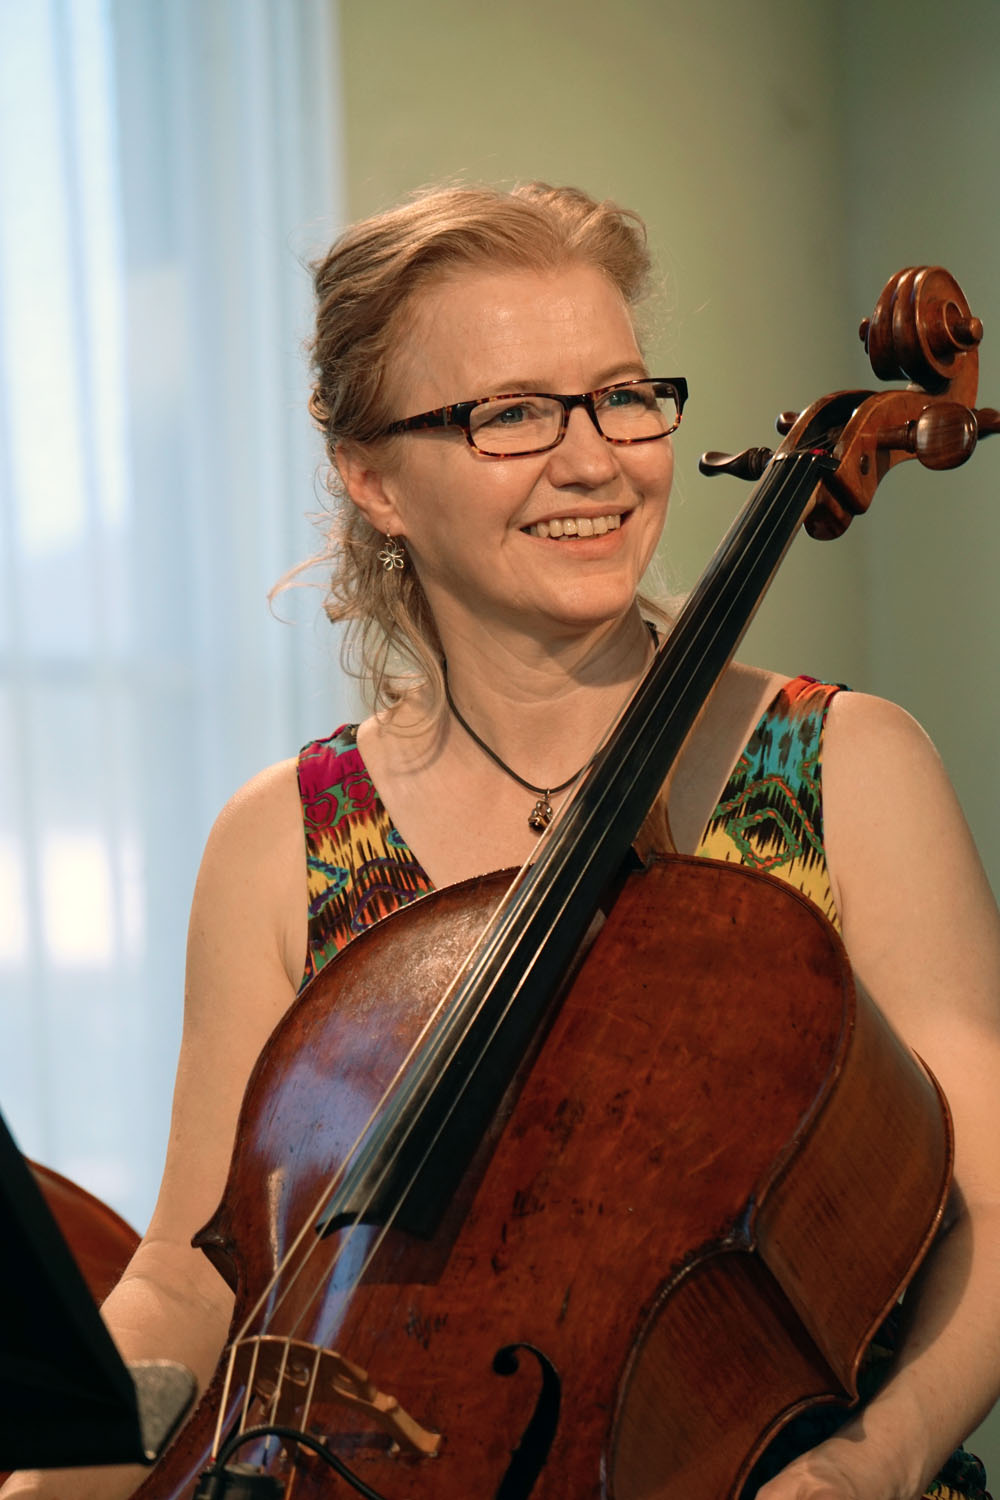 CIMF 2016 - Concert 03 - With Love and Fury. Sound Check. Katie Noonan with the Brodsky Quartet